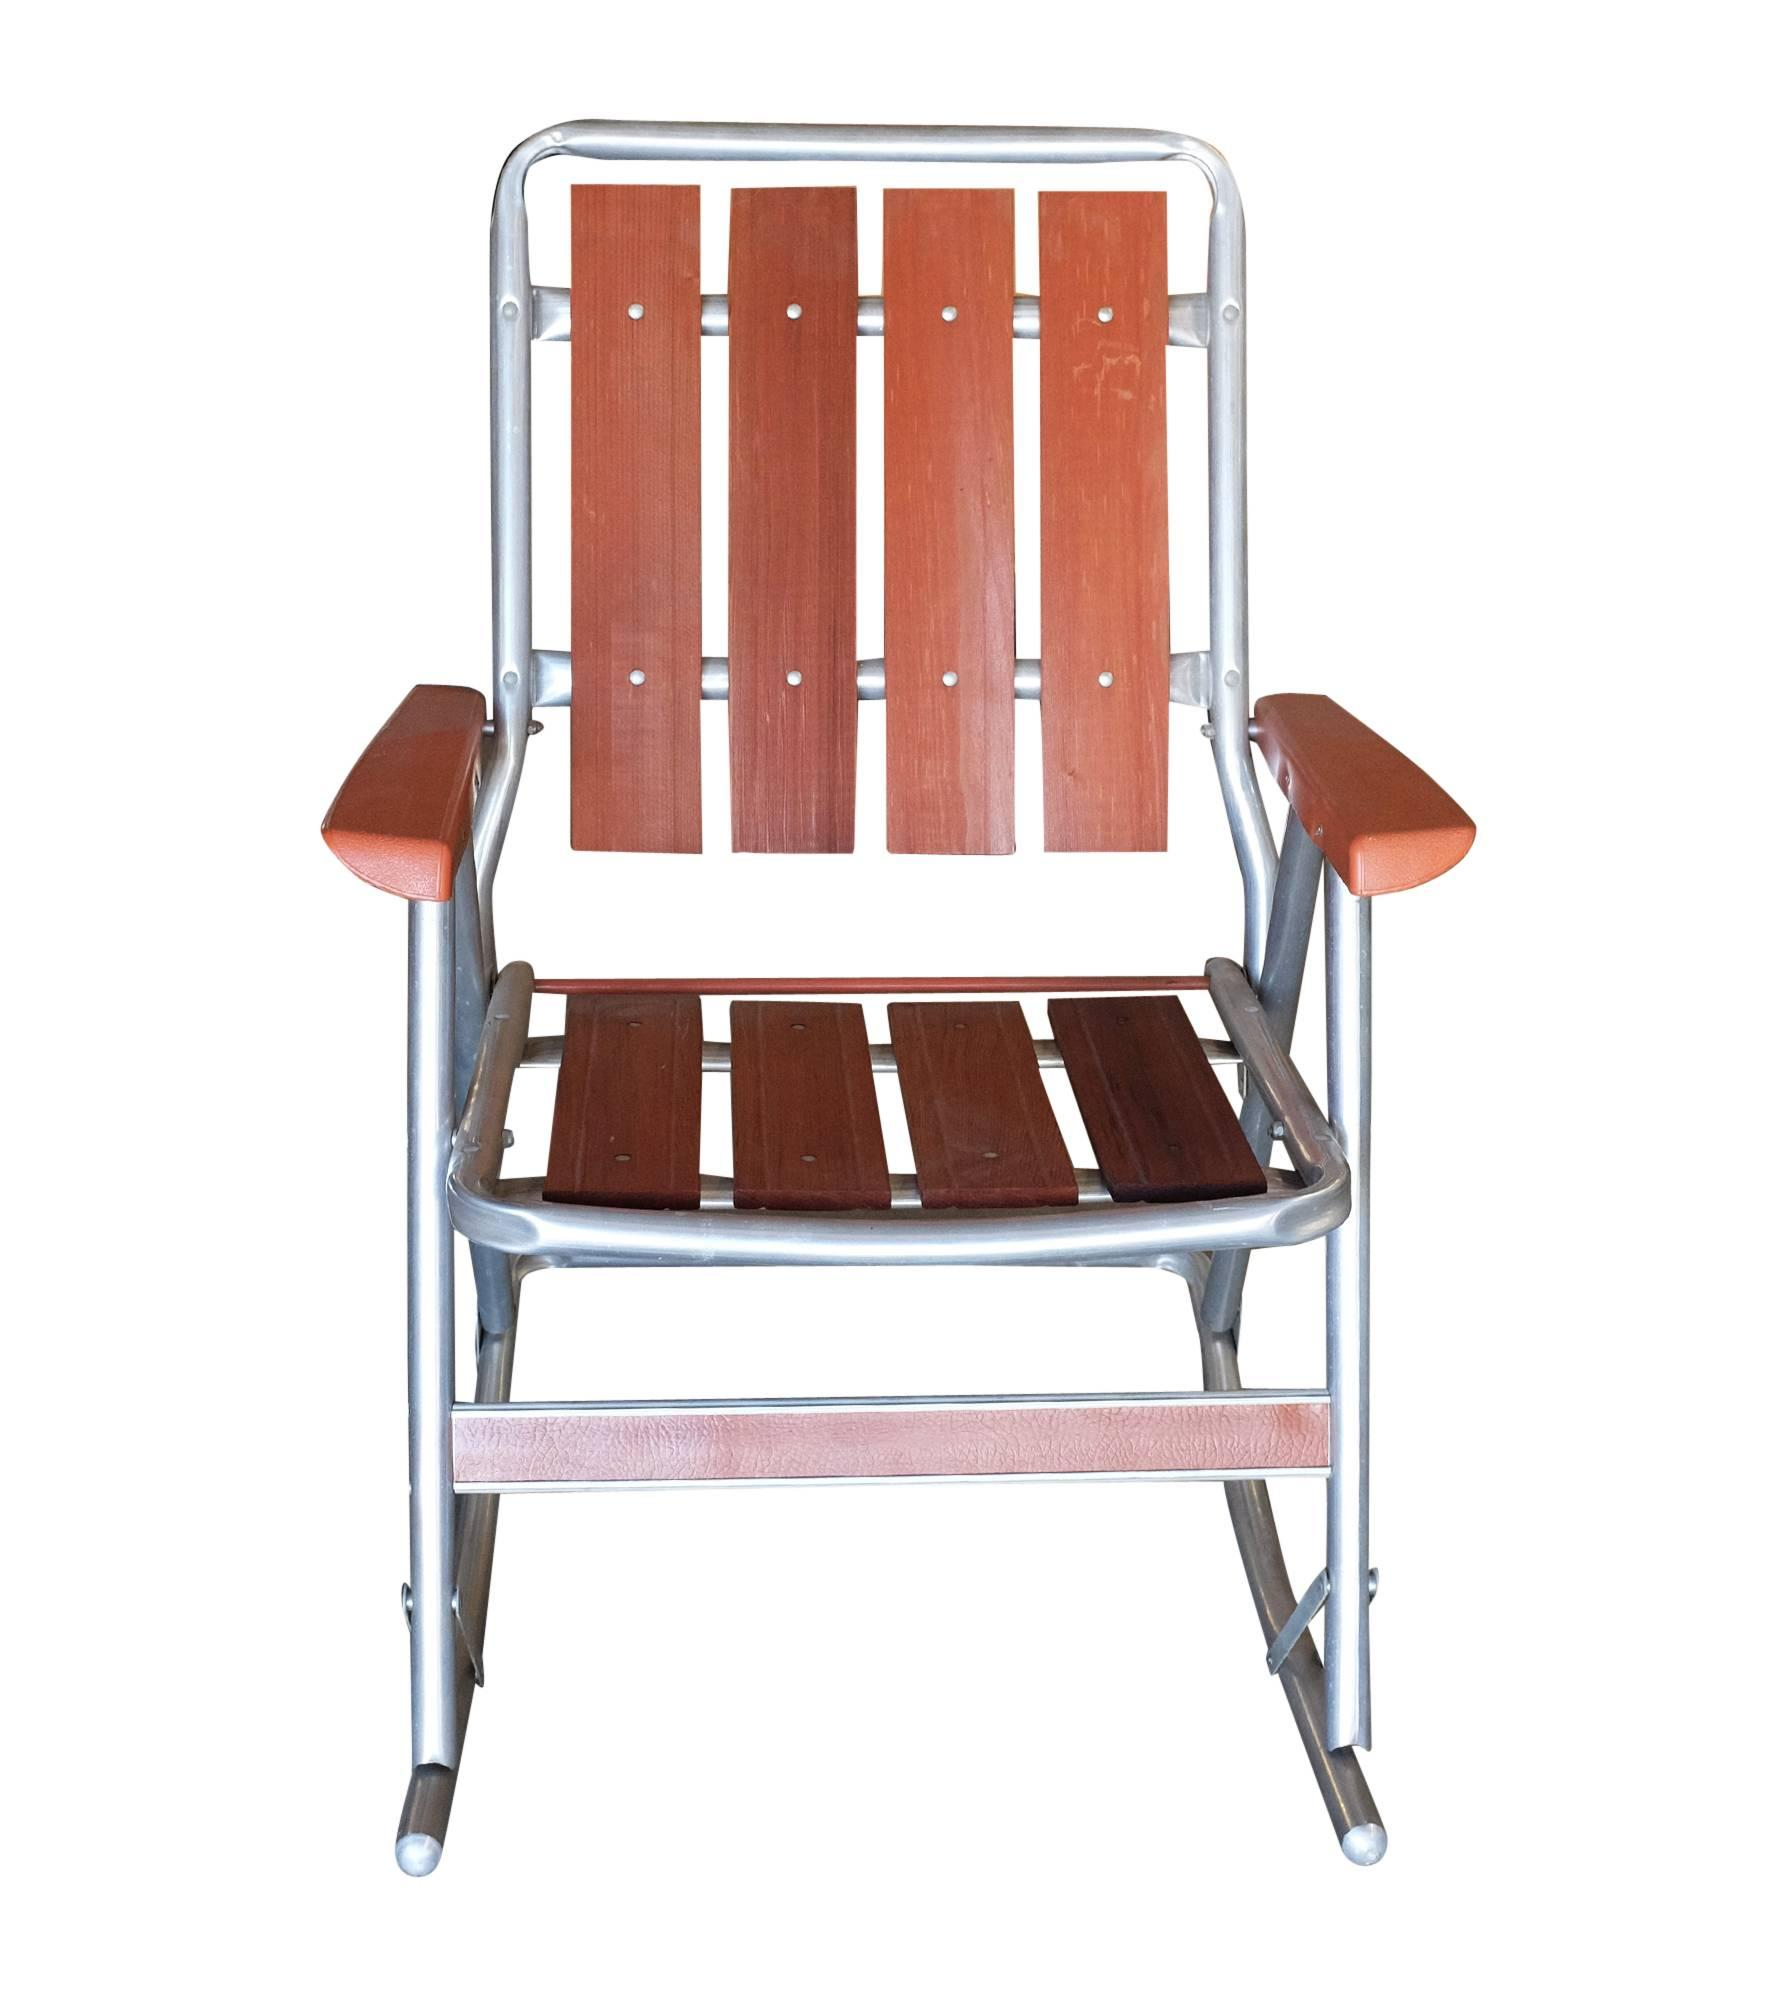 popular midcentury aluminum and wood outdoor folding rocking